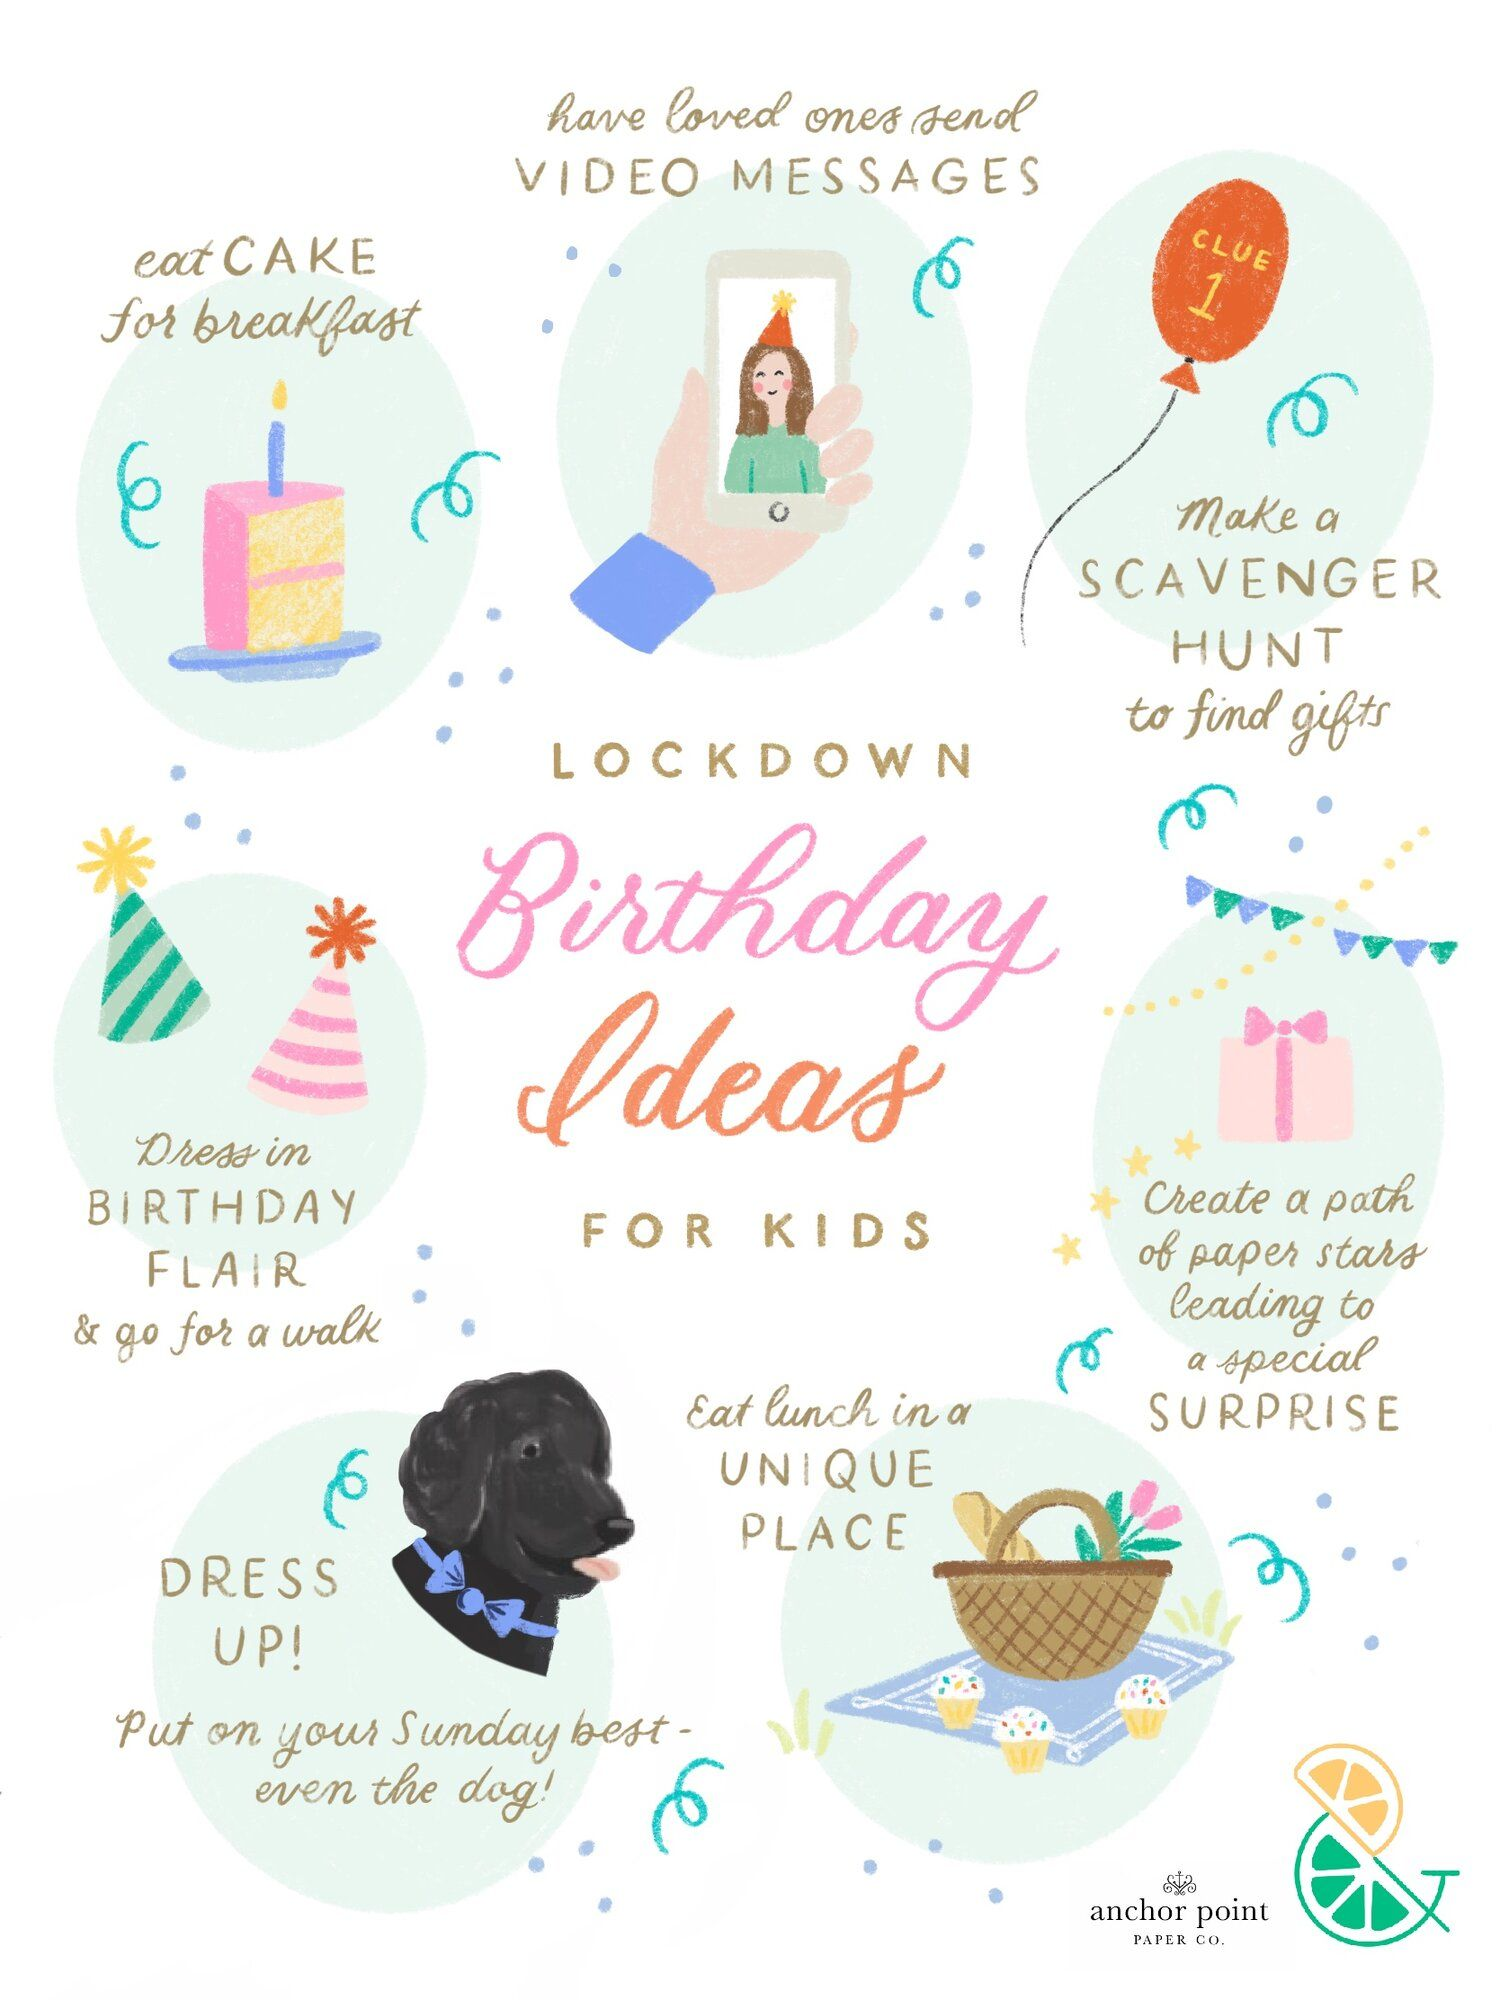 Lockdown Birthday ideas for Kids! in 2020 Kids birthday